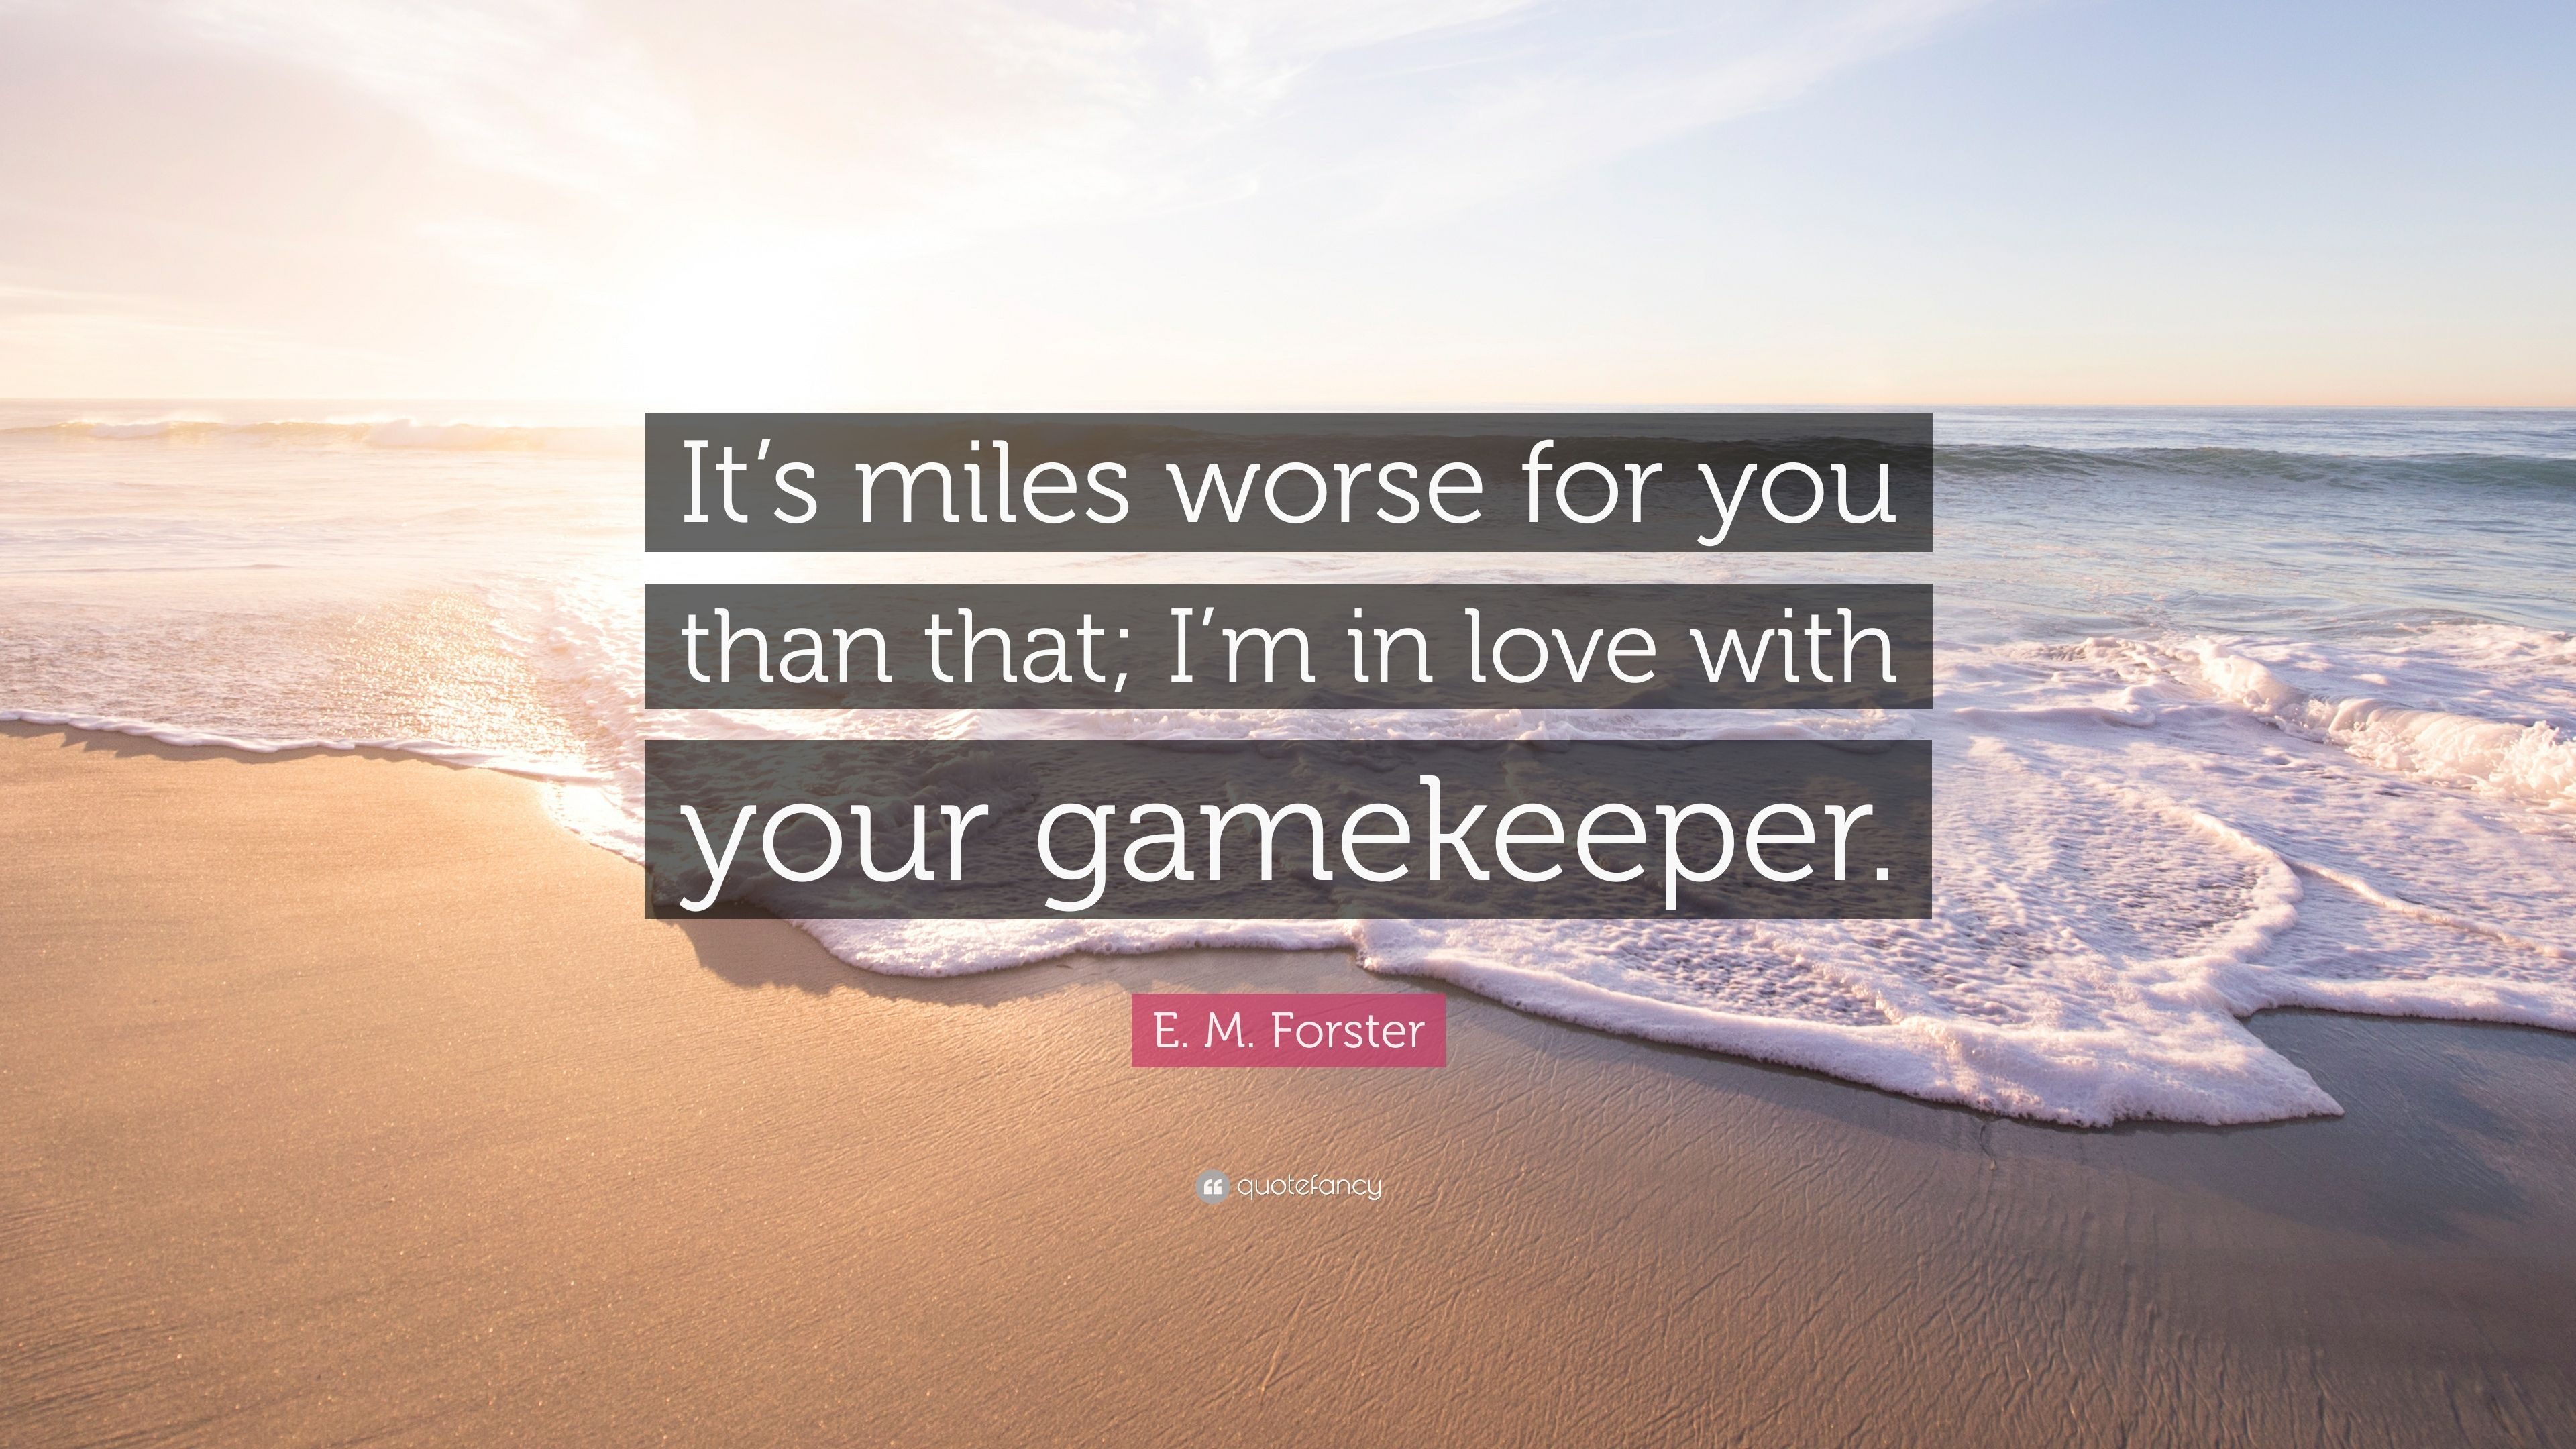 E M Forster Quote It S Miles Worse For You Than That I M In Love With Your Gamekeeper 7 Wallpapers Quotefancy